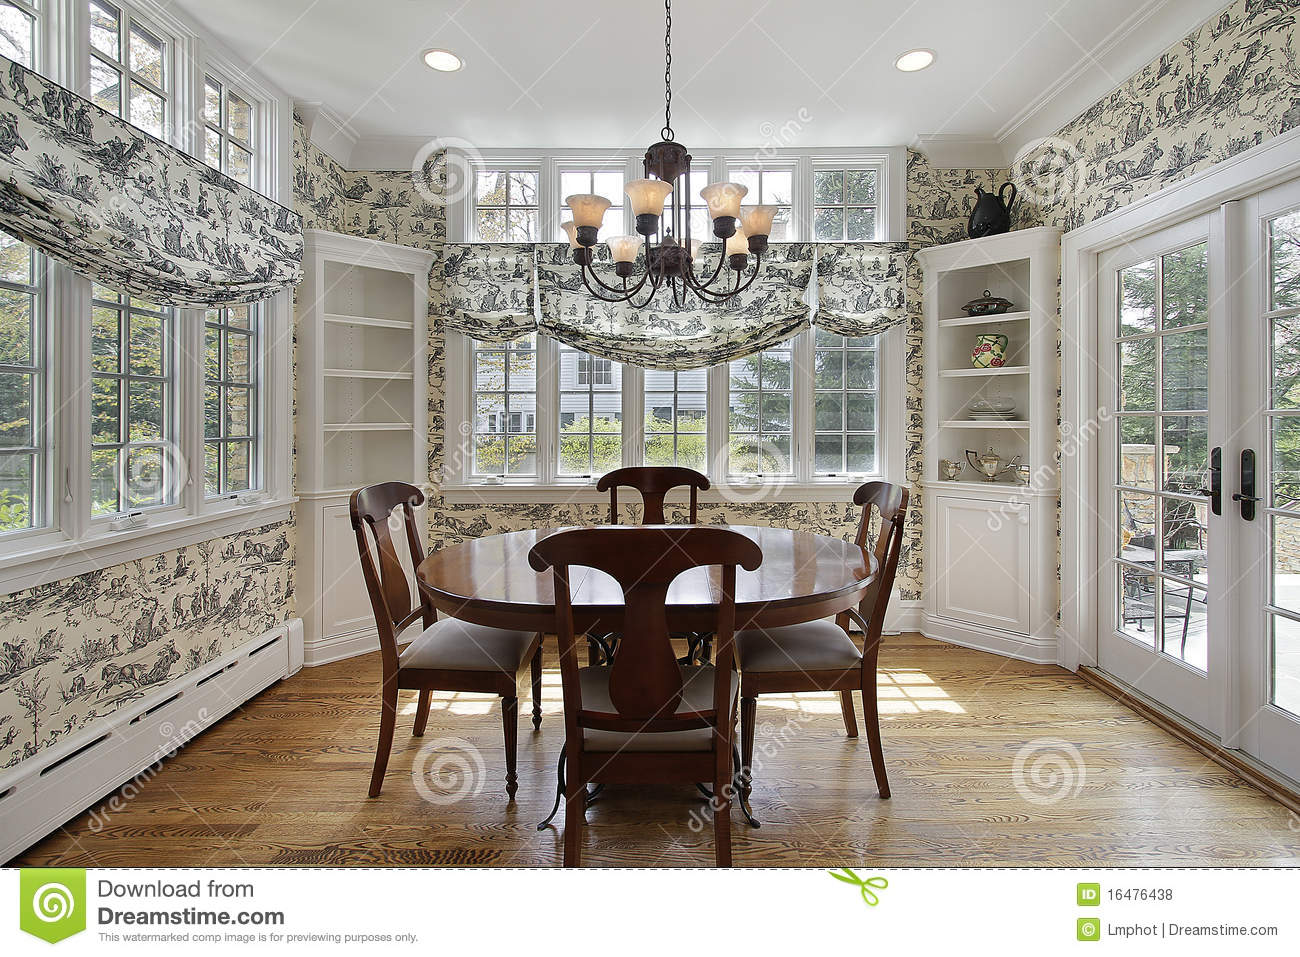 Breakfast Room With Wall Of Windows Stock Photo Image Of